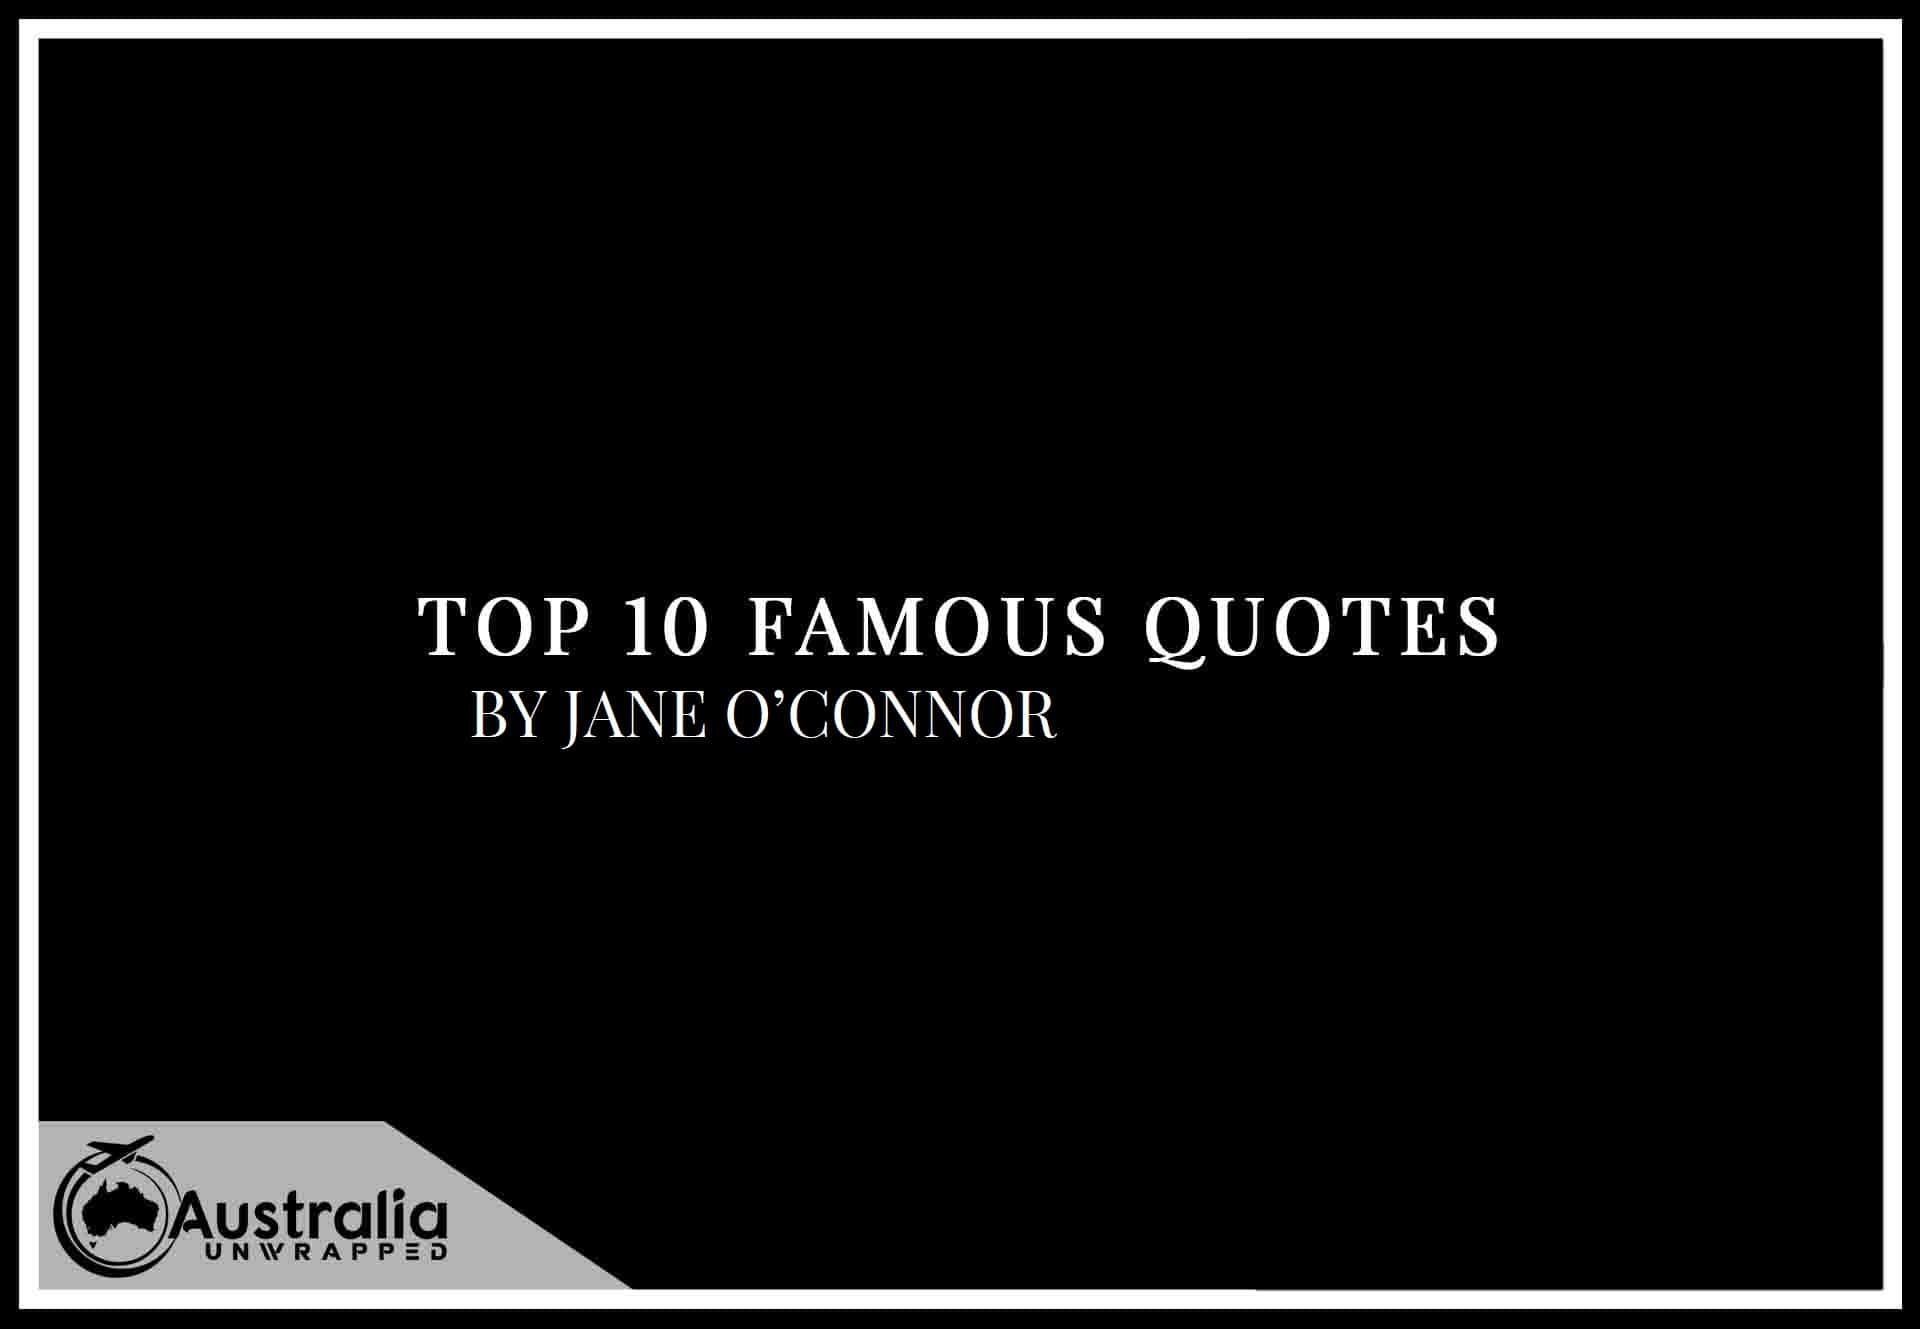 Top 10 Famous Quotes by Author Jane O'Conner